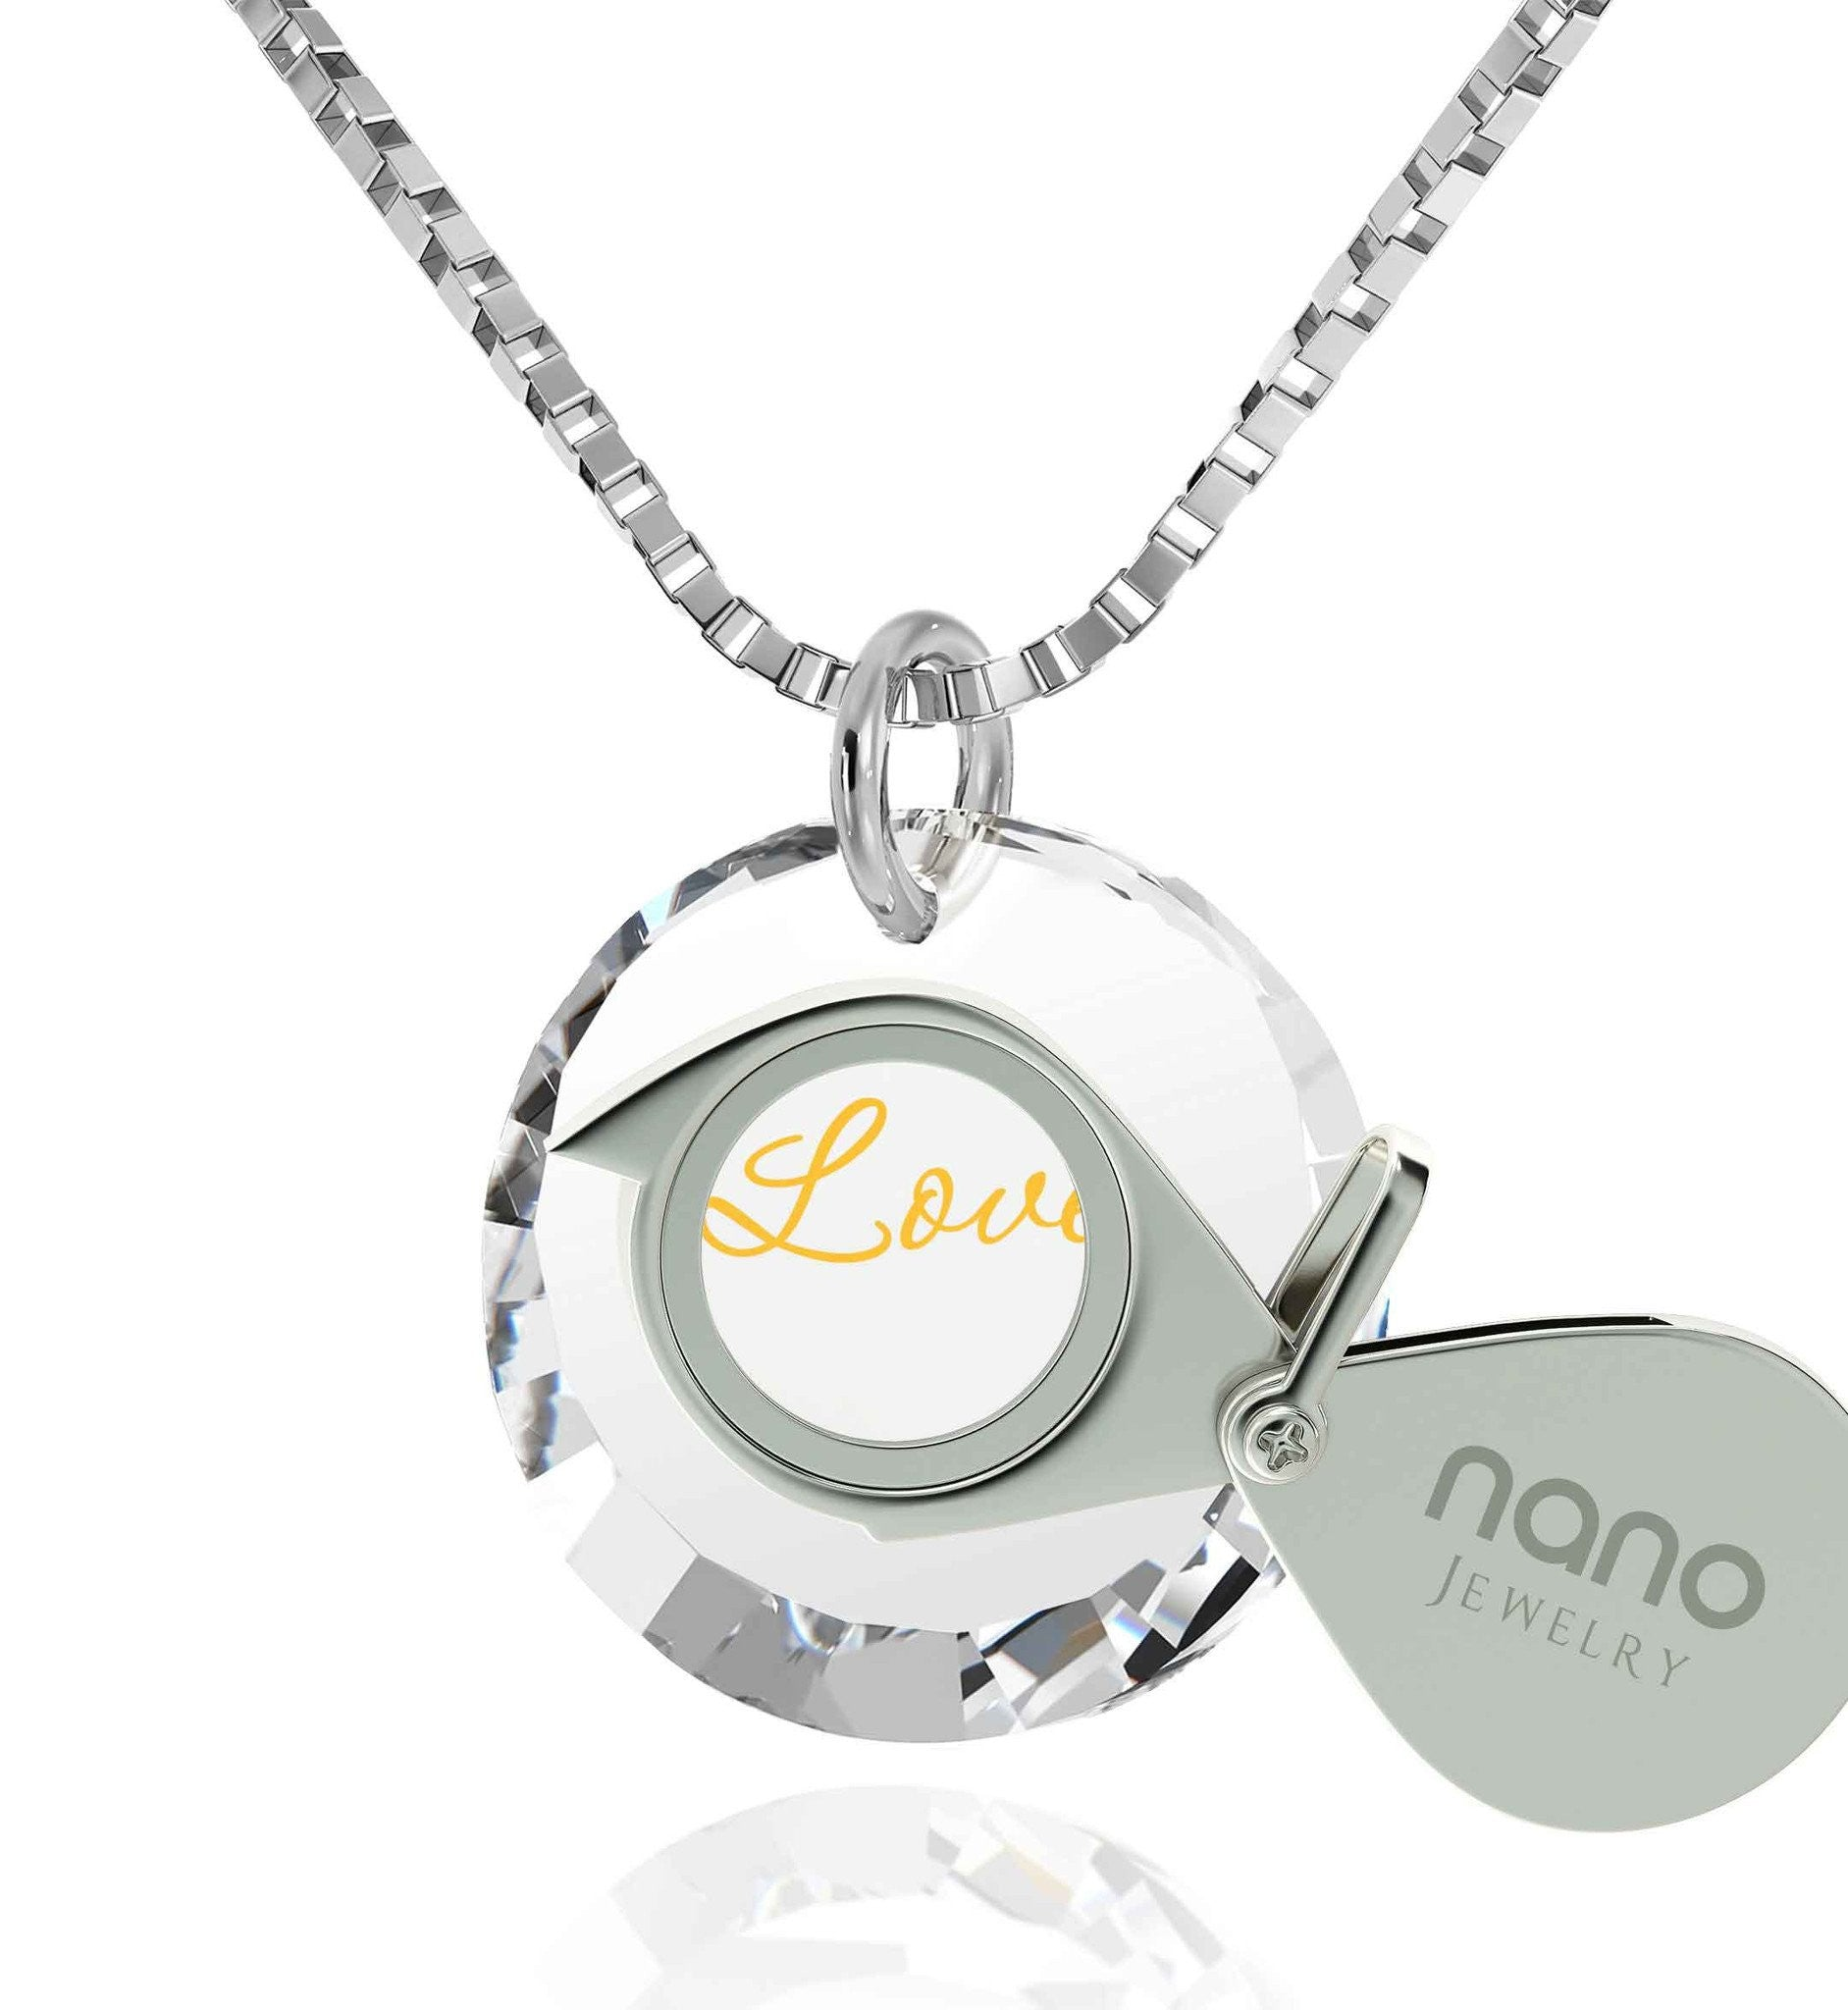 : Top Gifts For Wife 24k Engraved Pendant Cz Jewelry Valentines Ideas For Her Nano